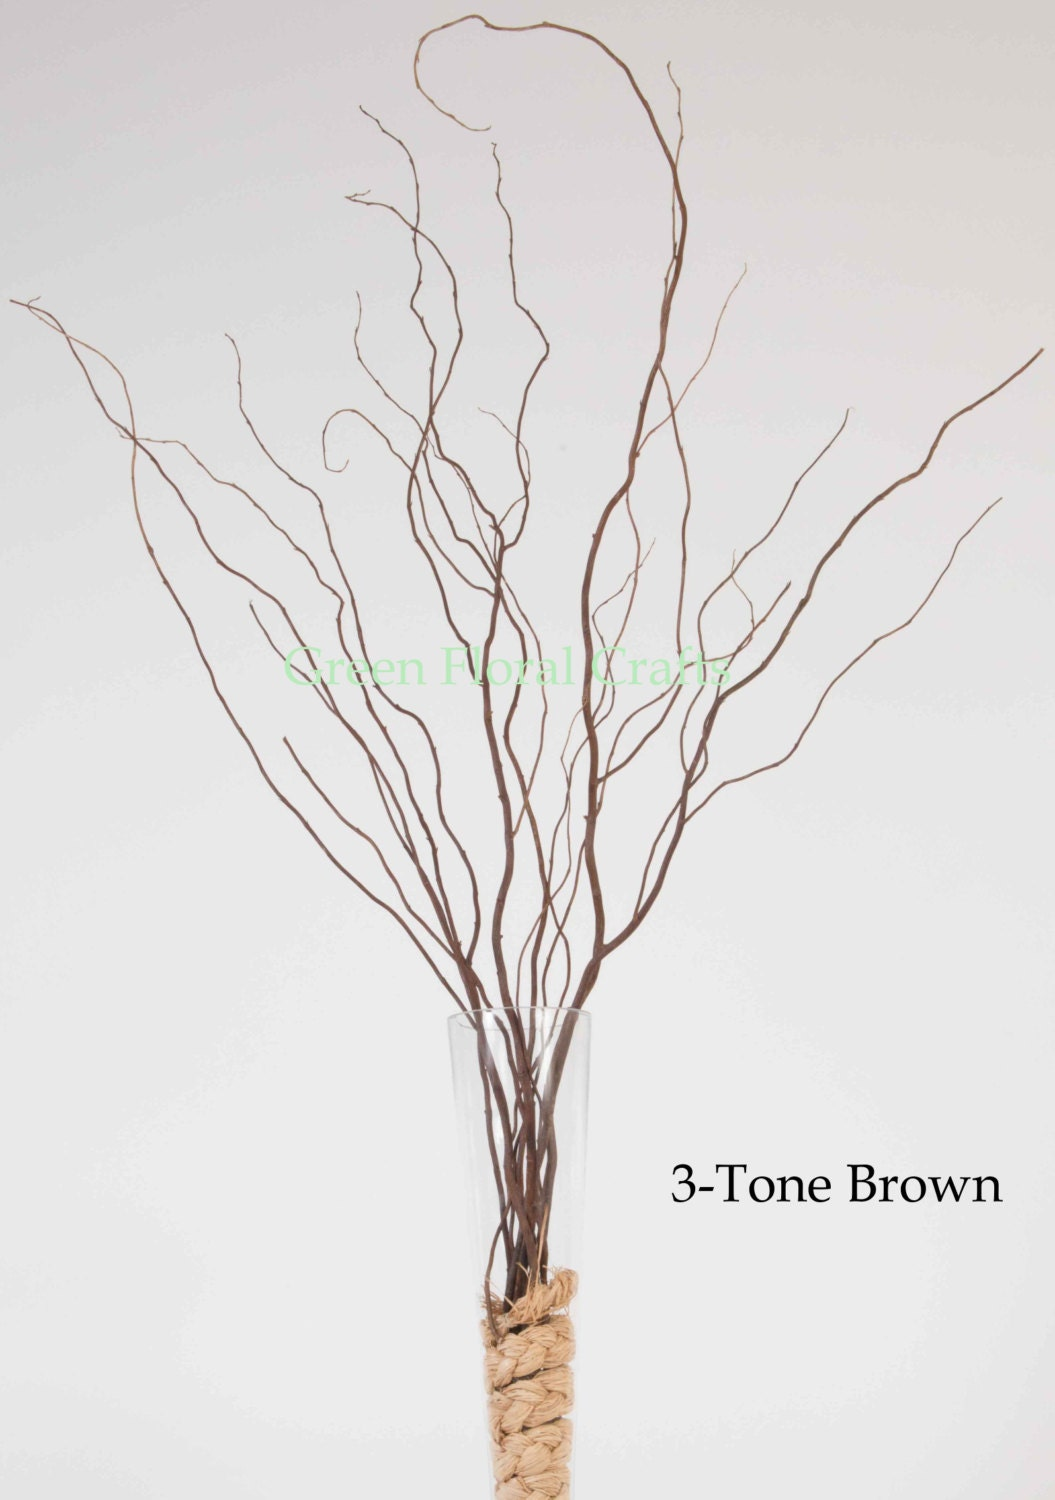 Curly Willow 3-4 ft, Bunch of 8-10 Stems, 4 Colors from ...